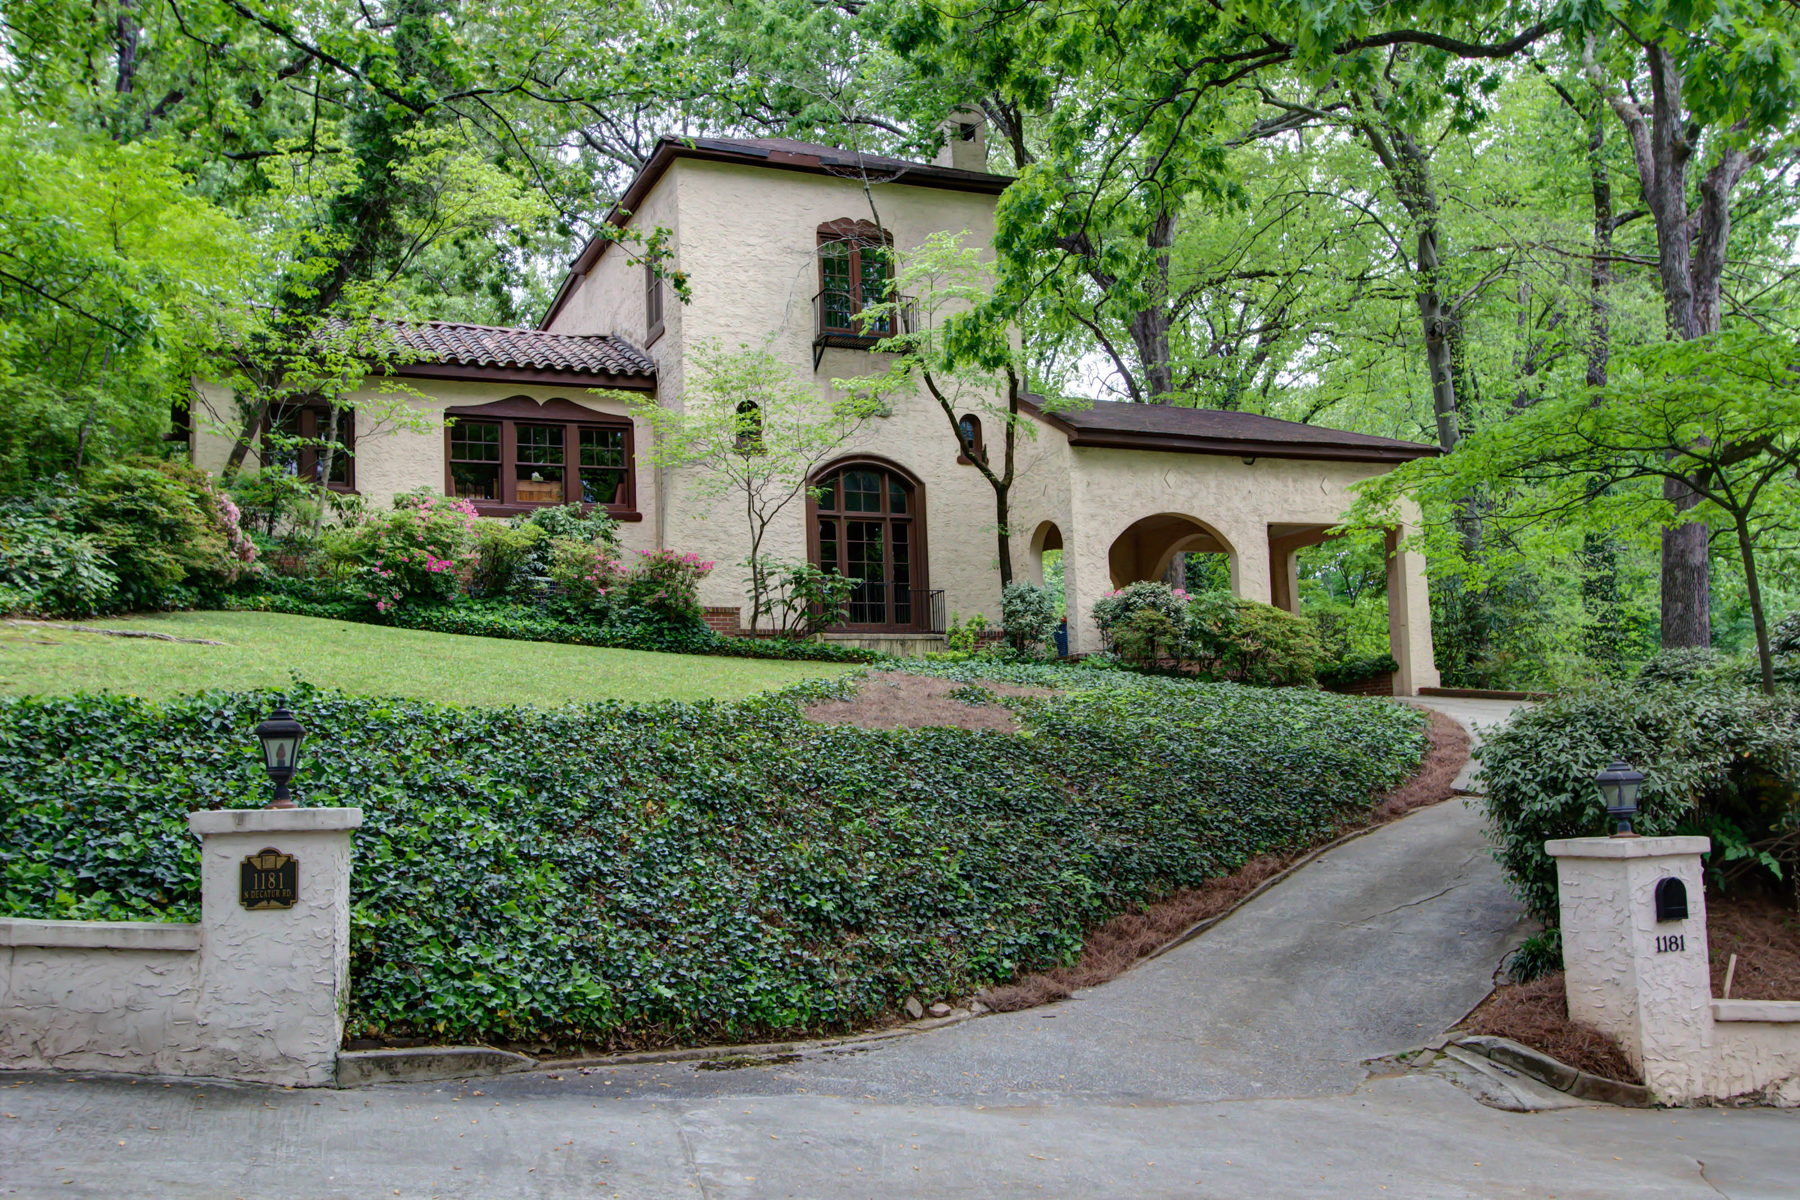 Single Family Home for Sale at Spectacular Spanish Villa On Double Lot In Druid Hills 1181 N Decatur Road NE Druid Hills, Atlanta, Georgia, 30306 United States